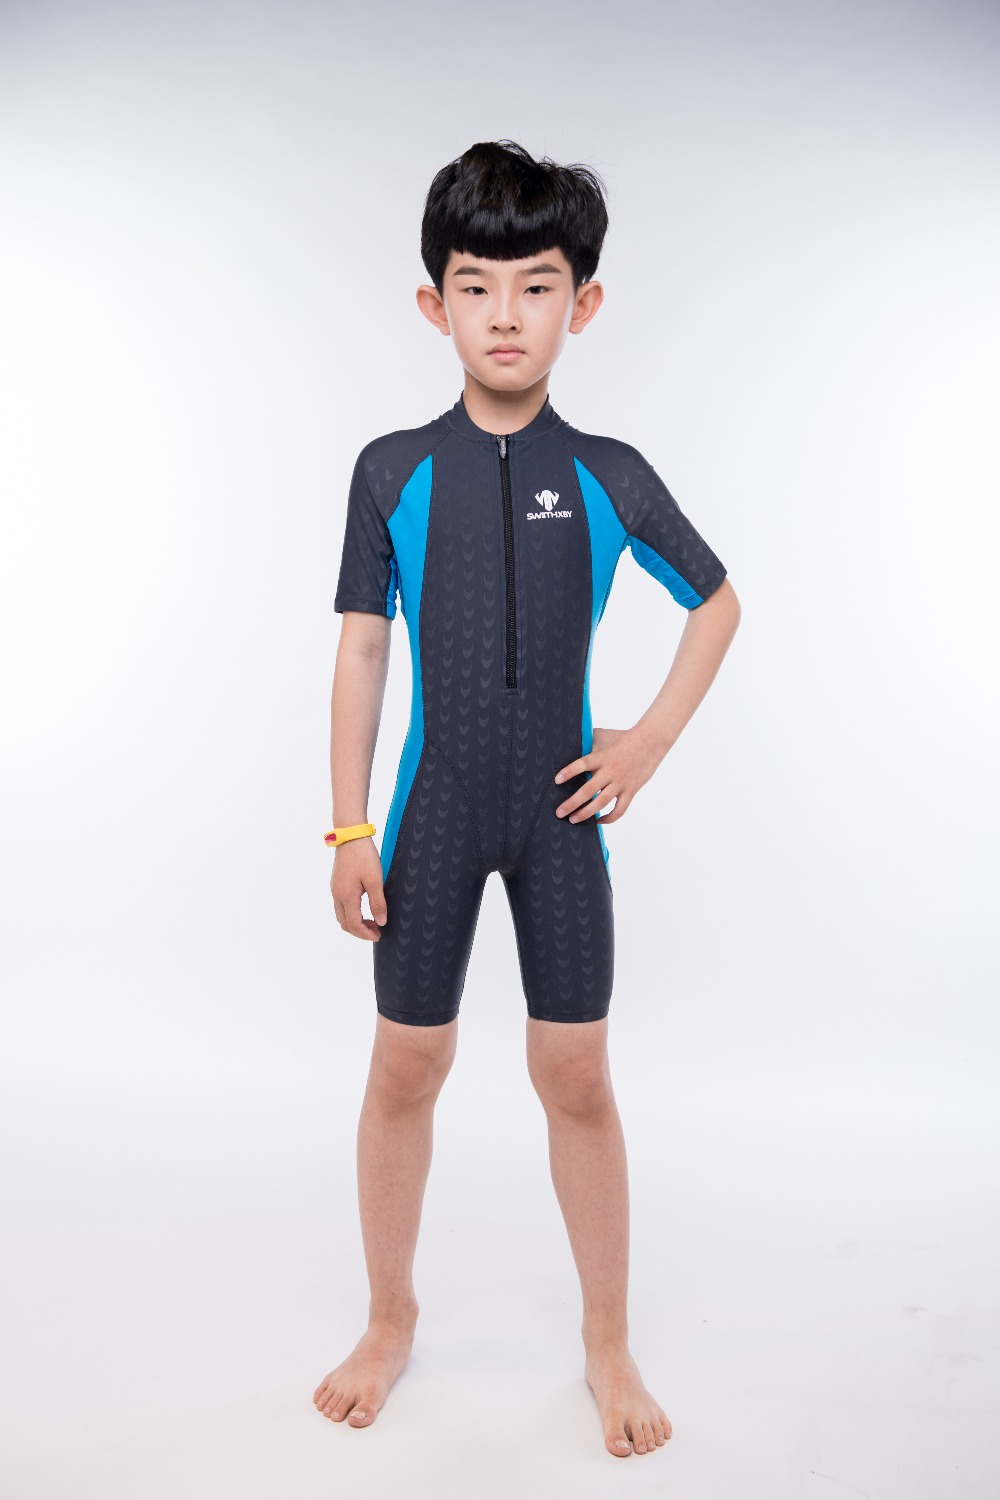 Boys One Piece Nylon Professional Swimwear Sports Pool Training Body Suit Kids Spandex Sport Outdoor Racing Bathing Beach Wear<br>